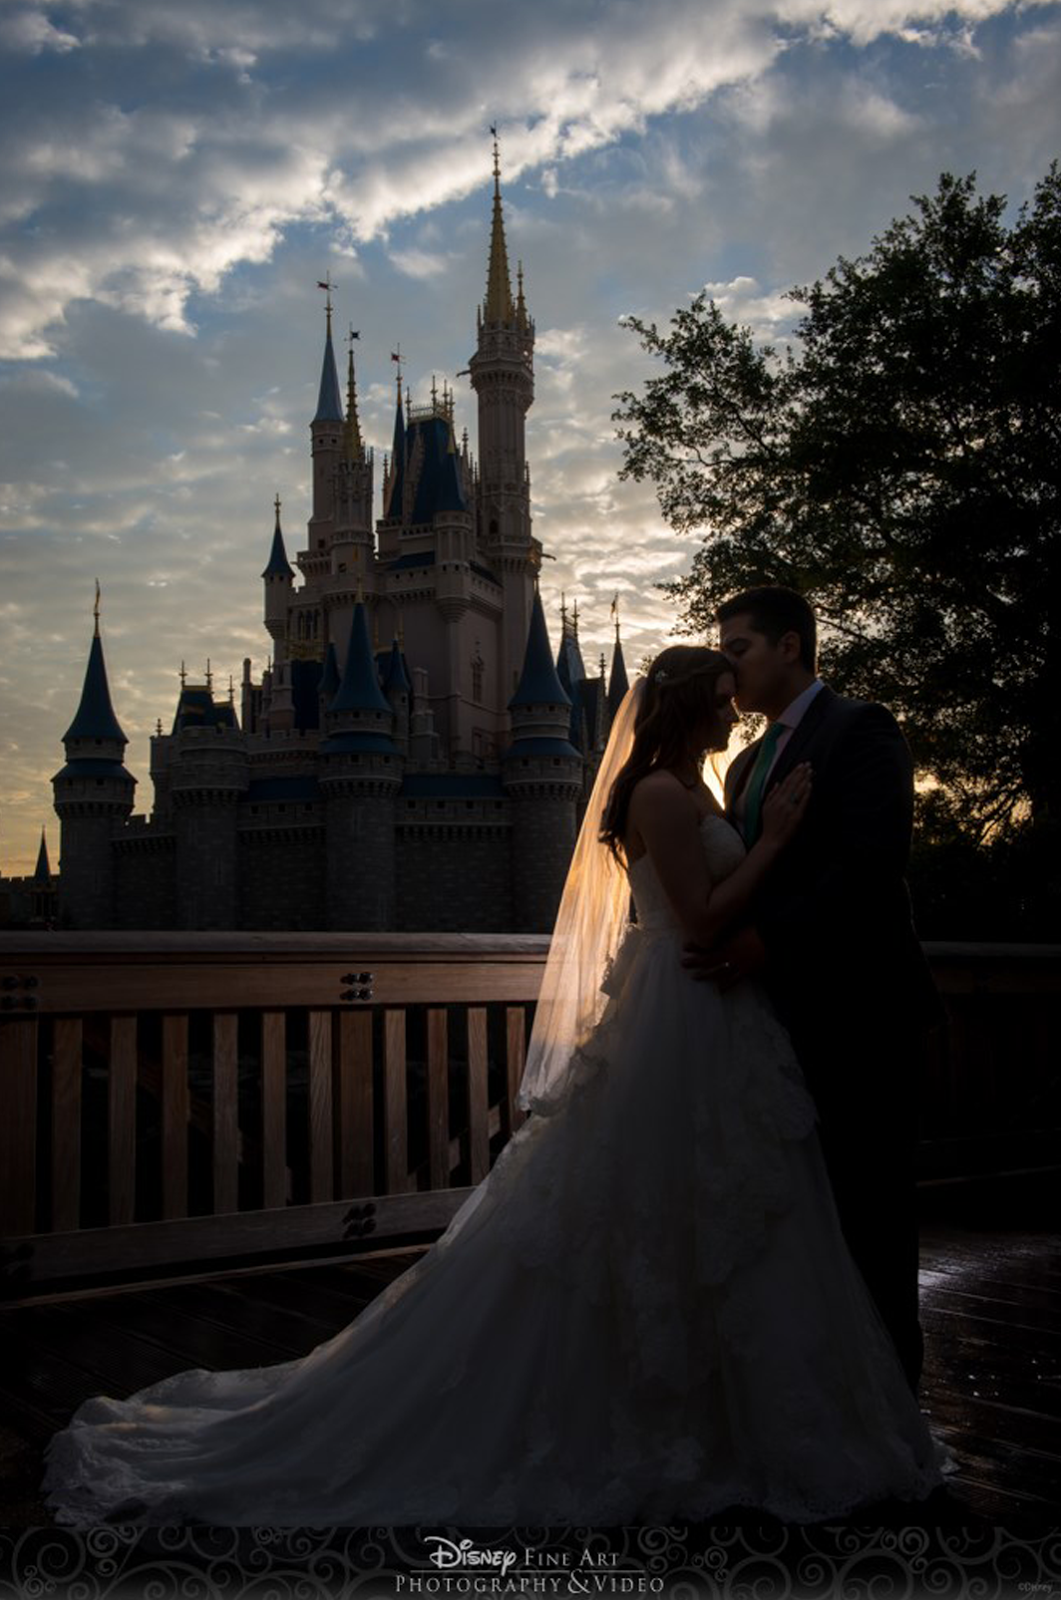 © Disney Fine Art Photography & Video